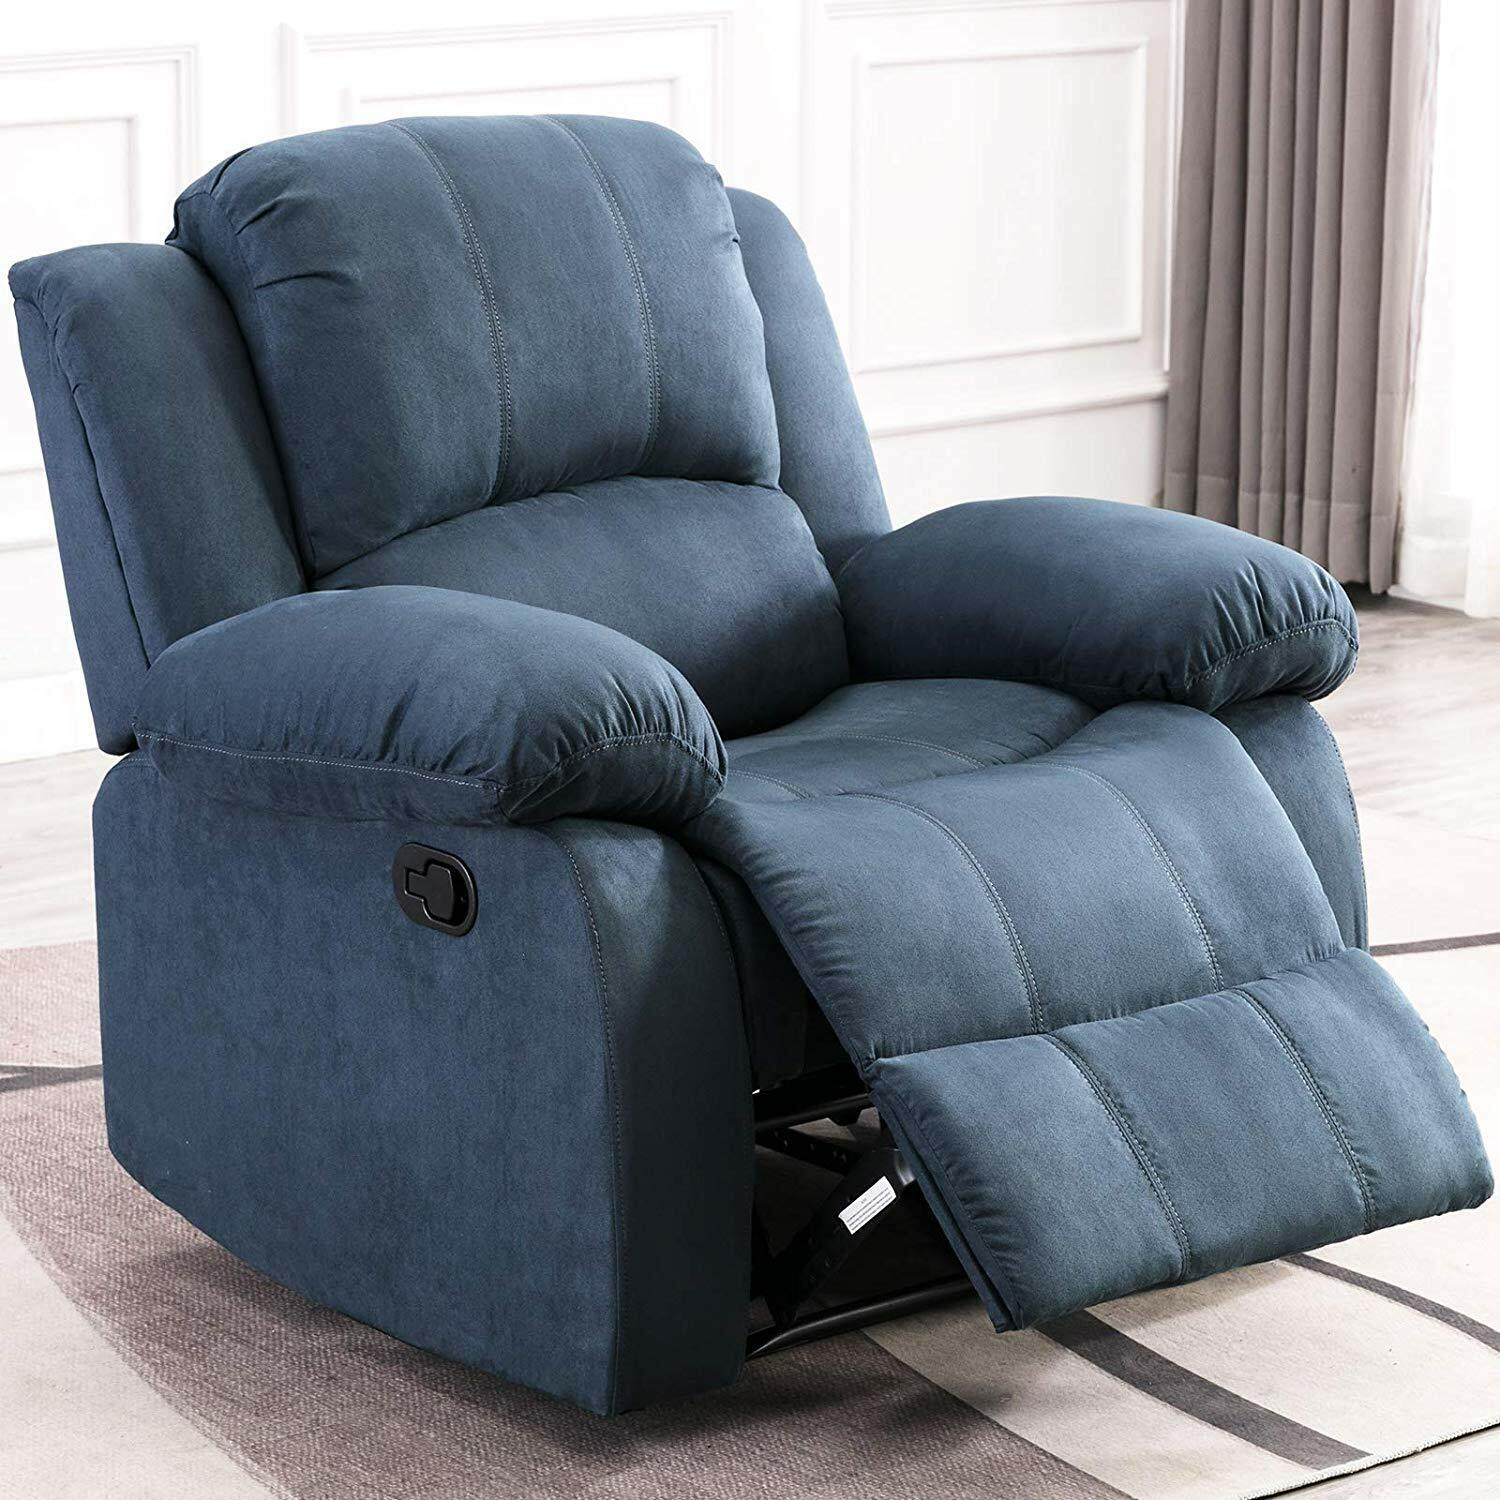 Details about Manual Recliner Chair Overstuffed Heavy Duty Recliner Home Theater Seating Blue